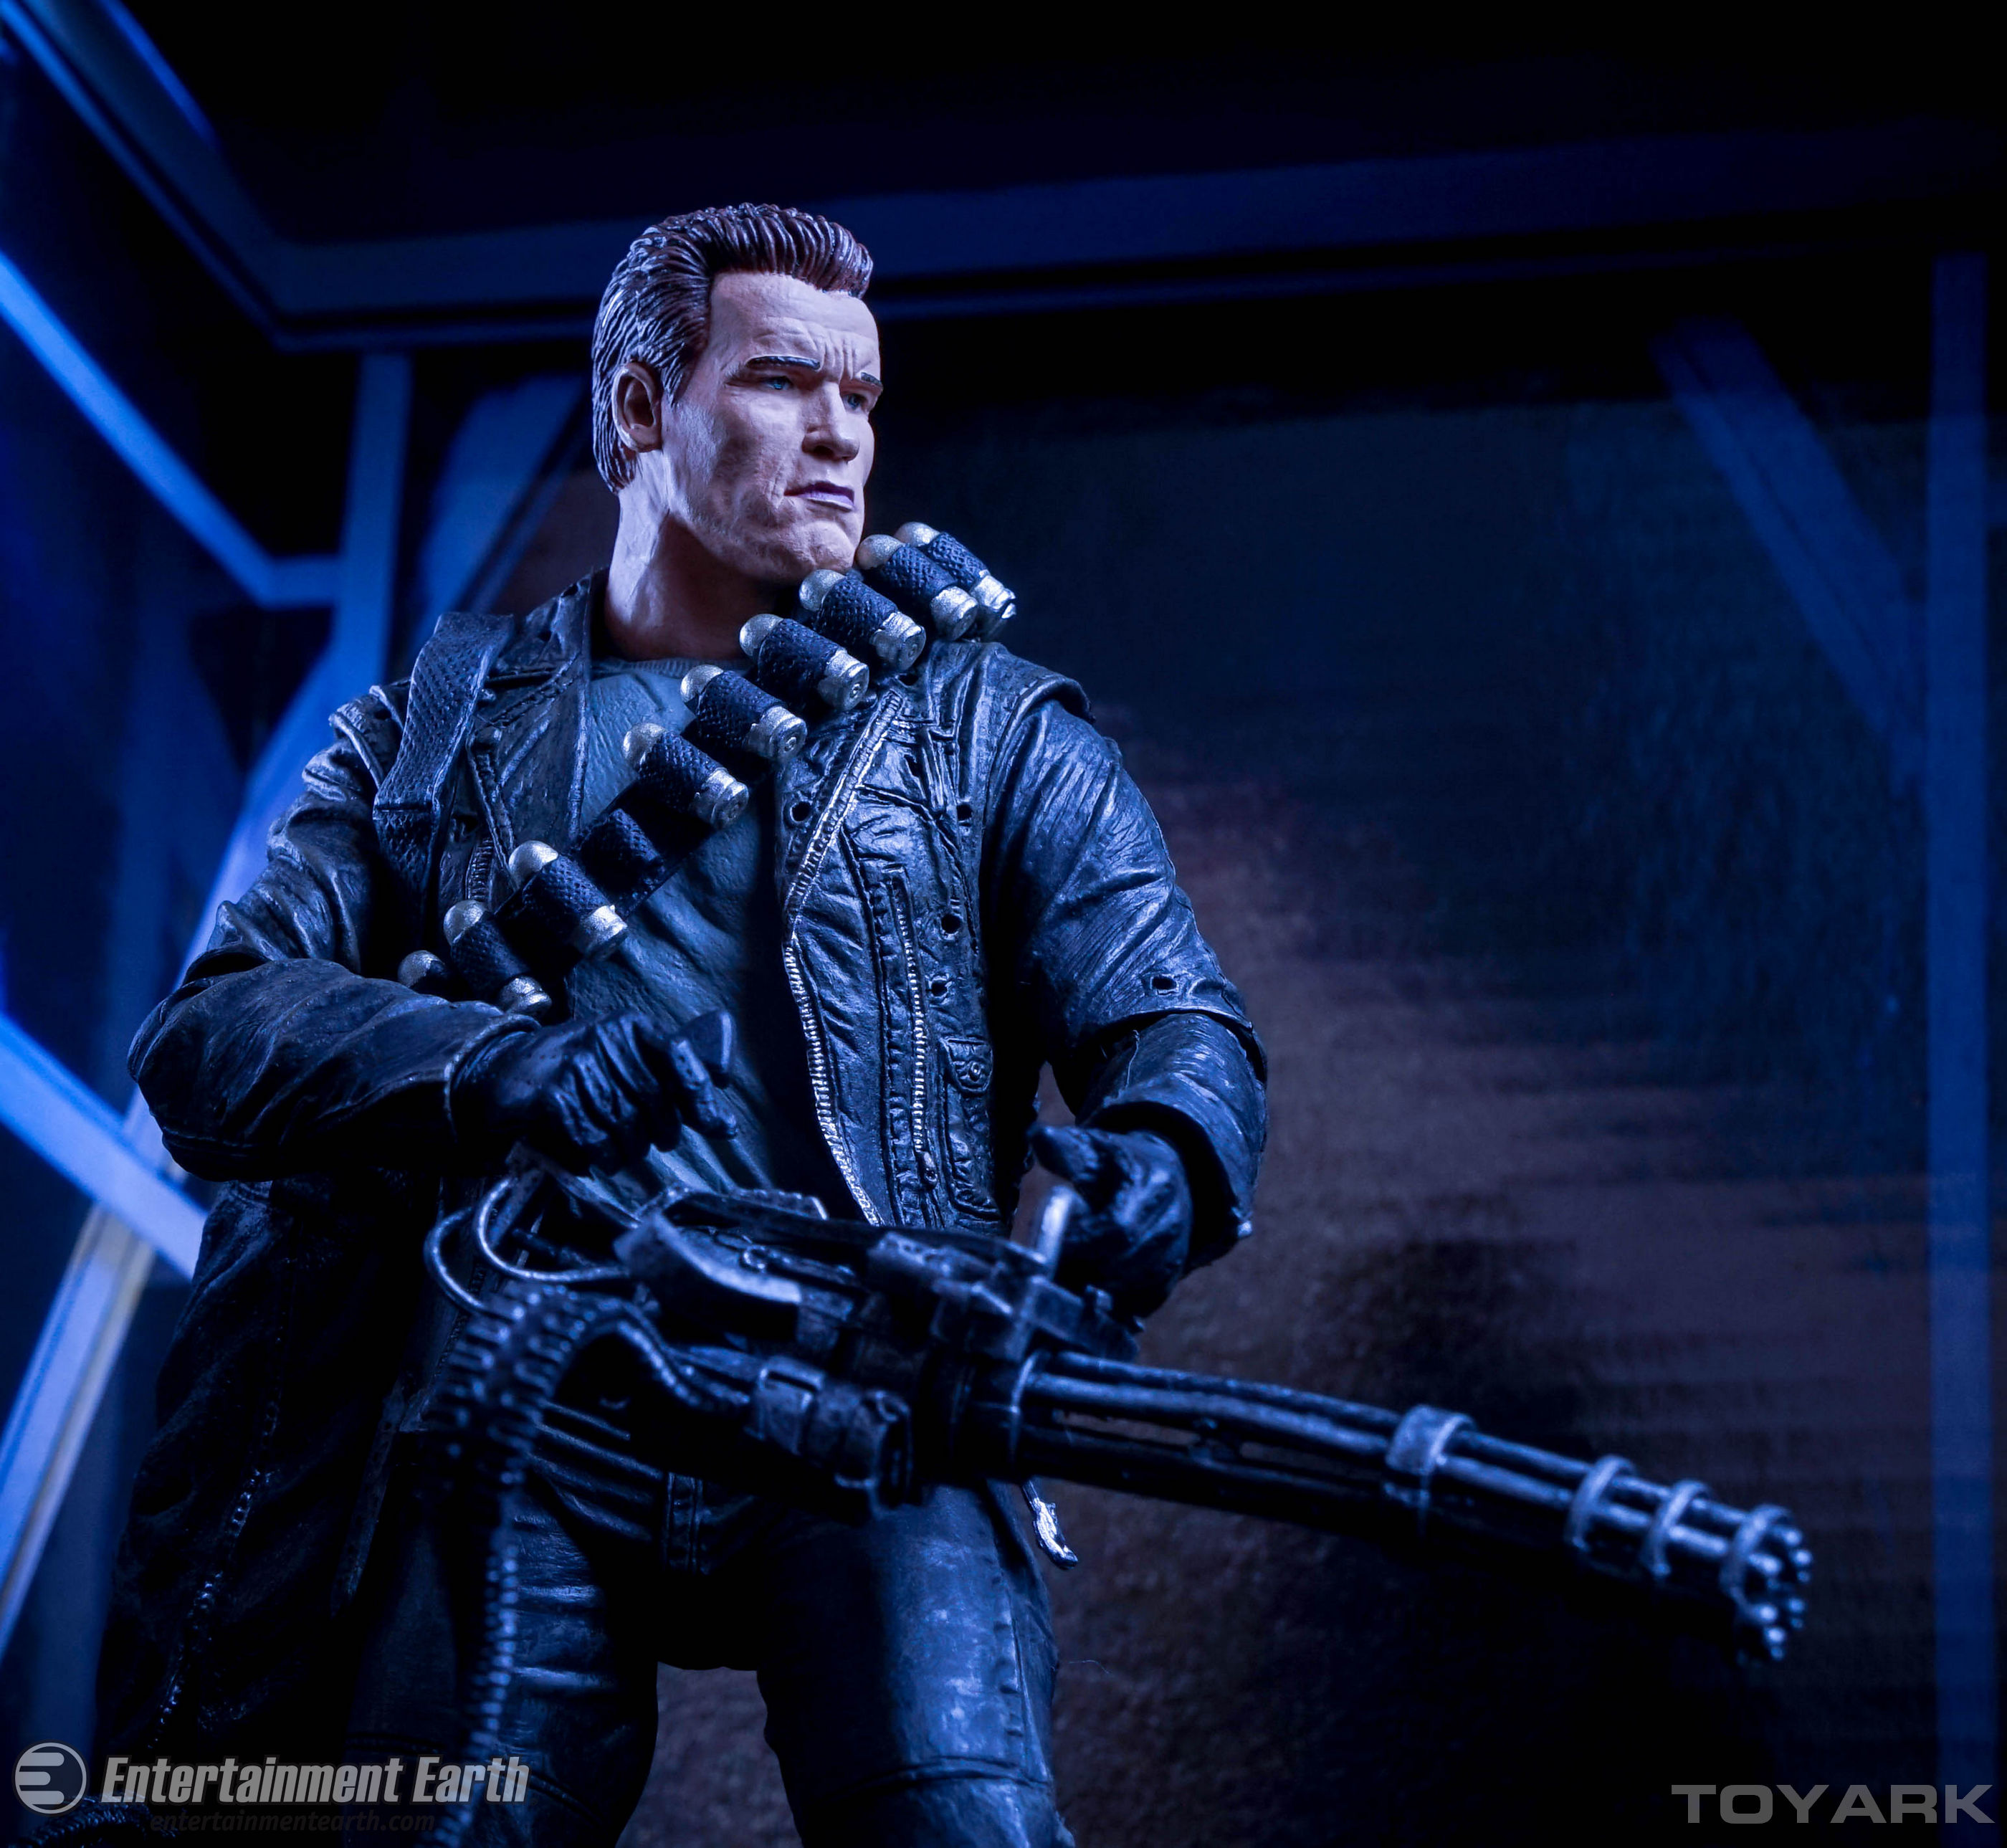 http://news.toyark.com/wp-content/uploads/sites/4/2015/10/NECA-T2-T800-Ultimate-068.jpg